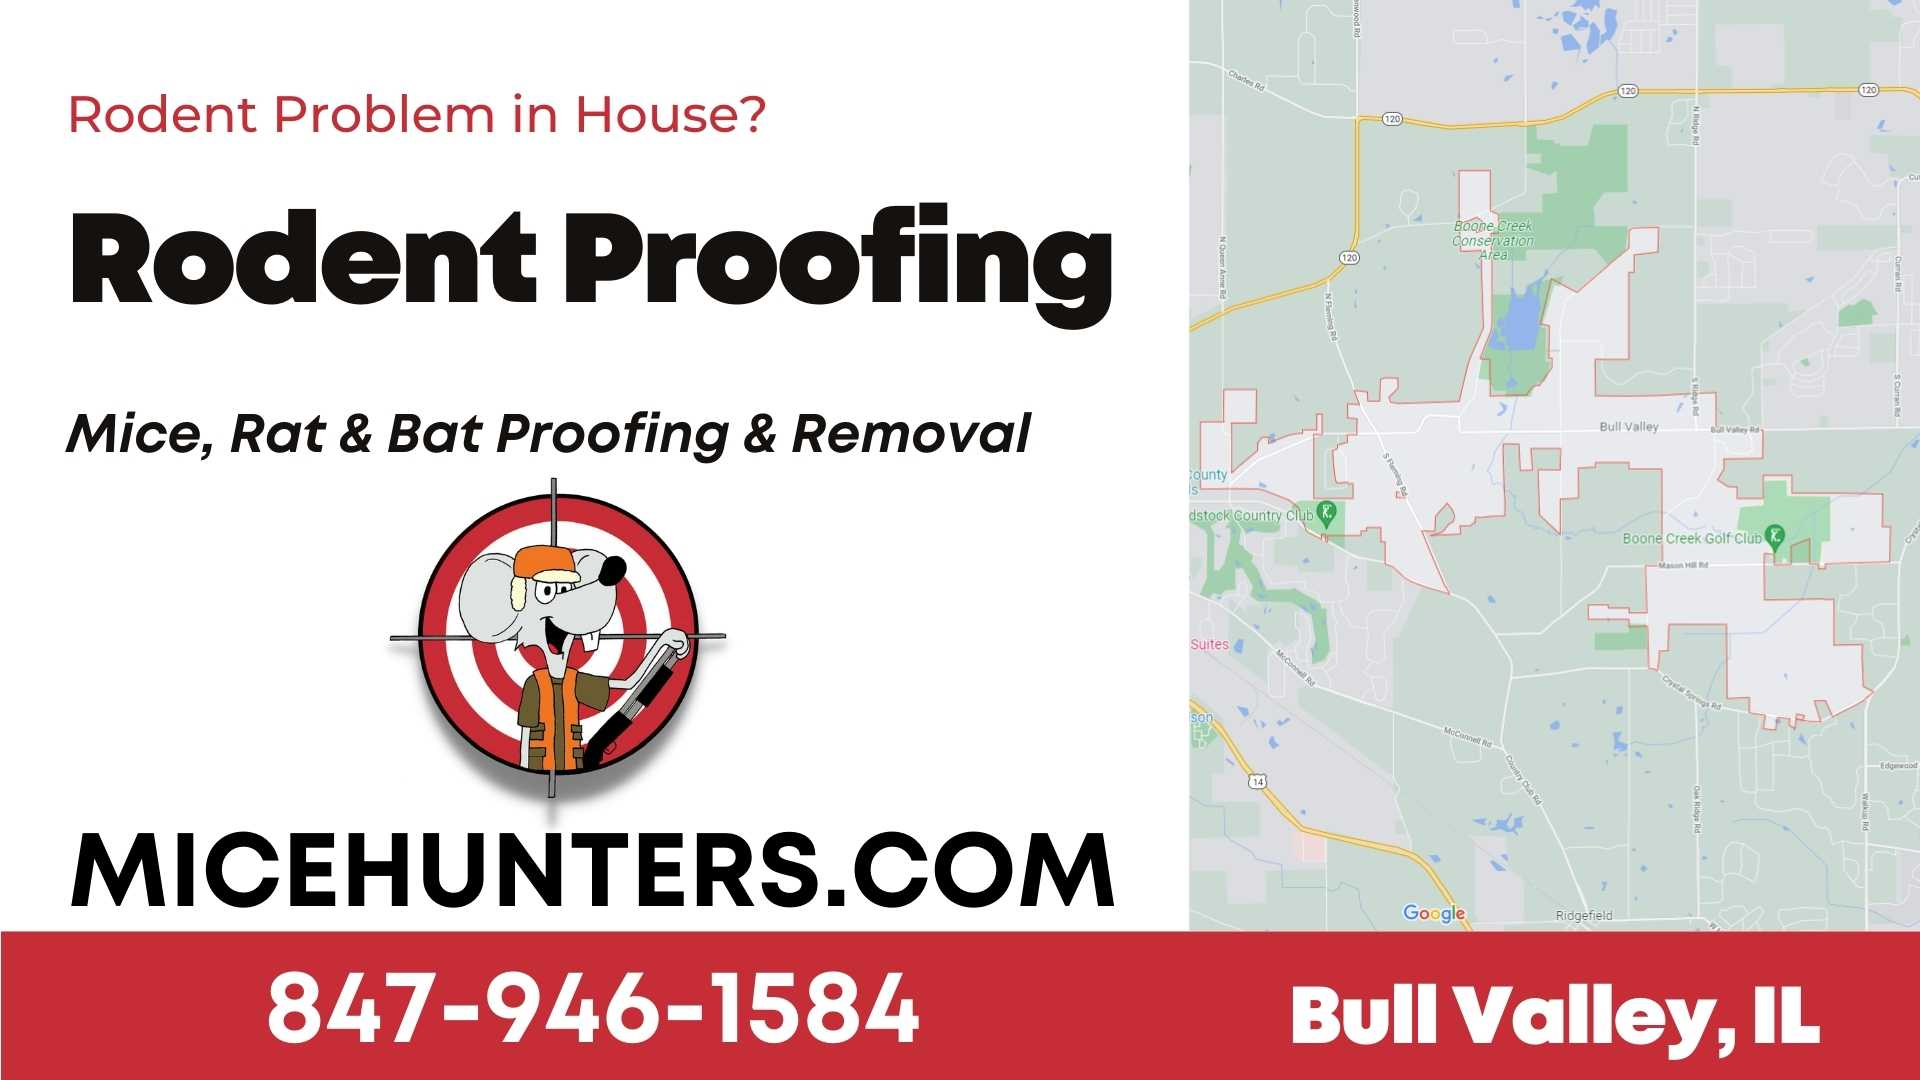 Bull Valley Rodent and Mice Proofing Exterminator near me